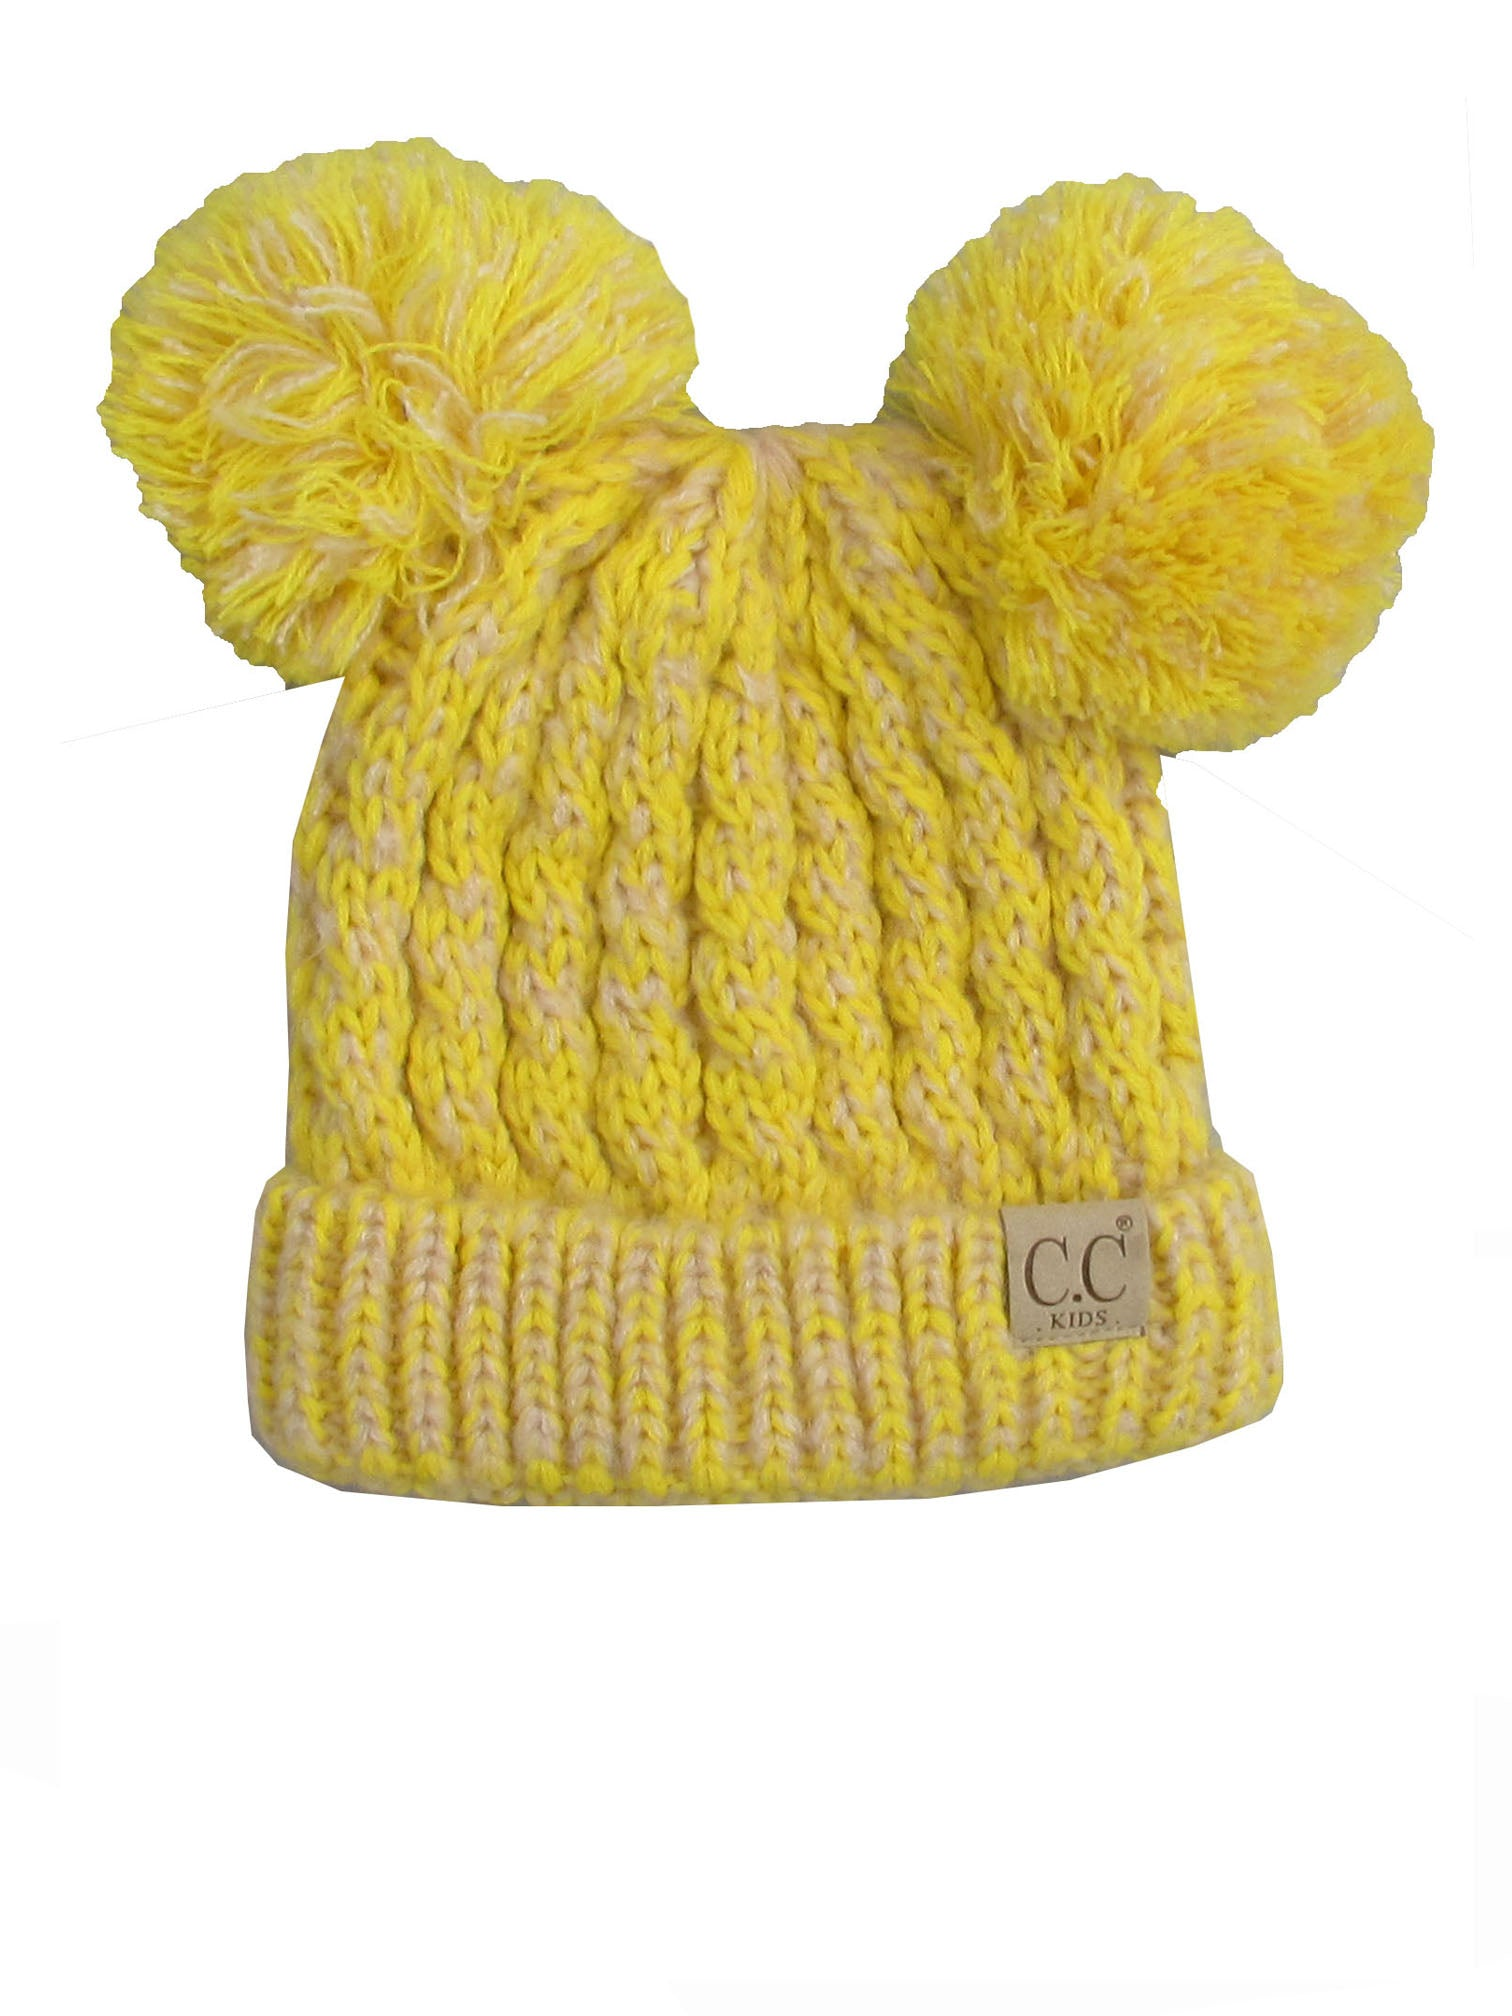 C.C Kid-23 Lemon Youth Beanie